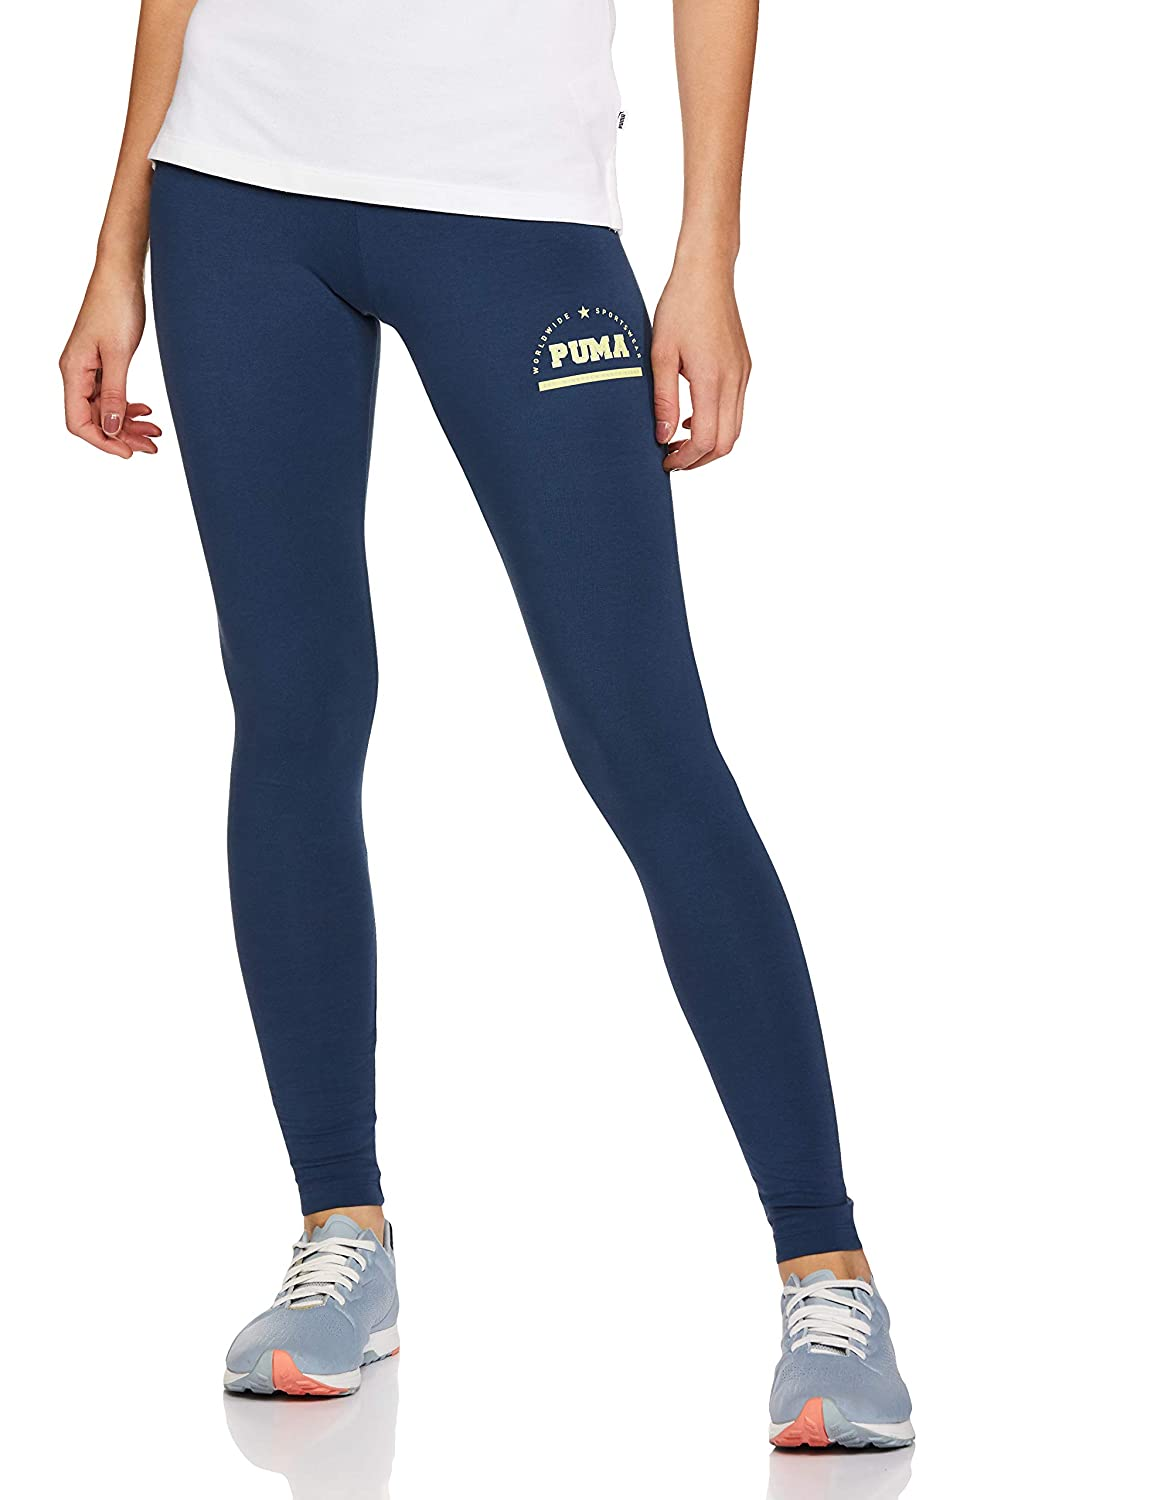 Puma Women's Leggings up to 80% off @ Amazon